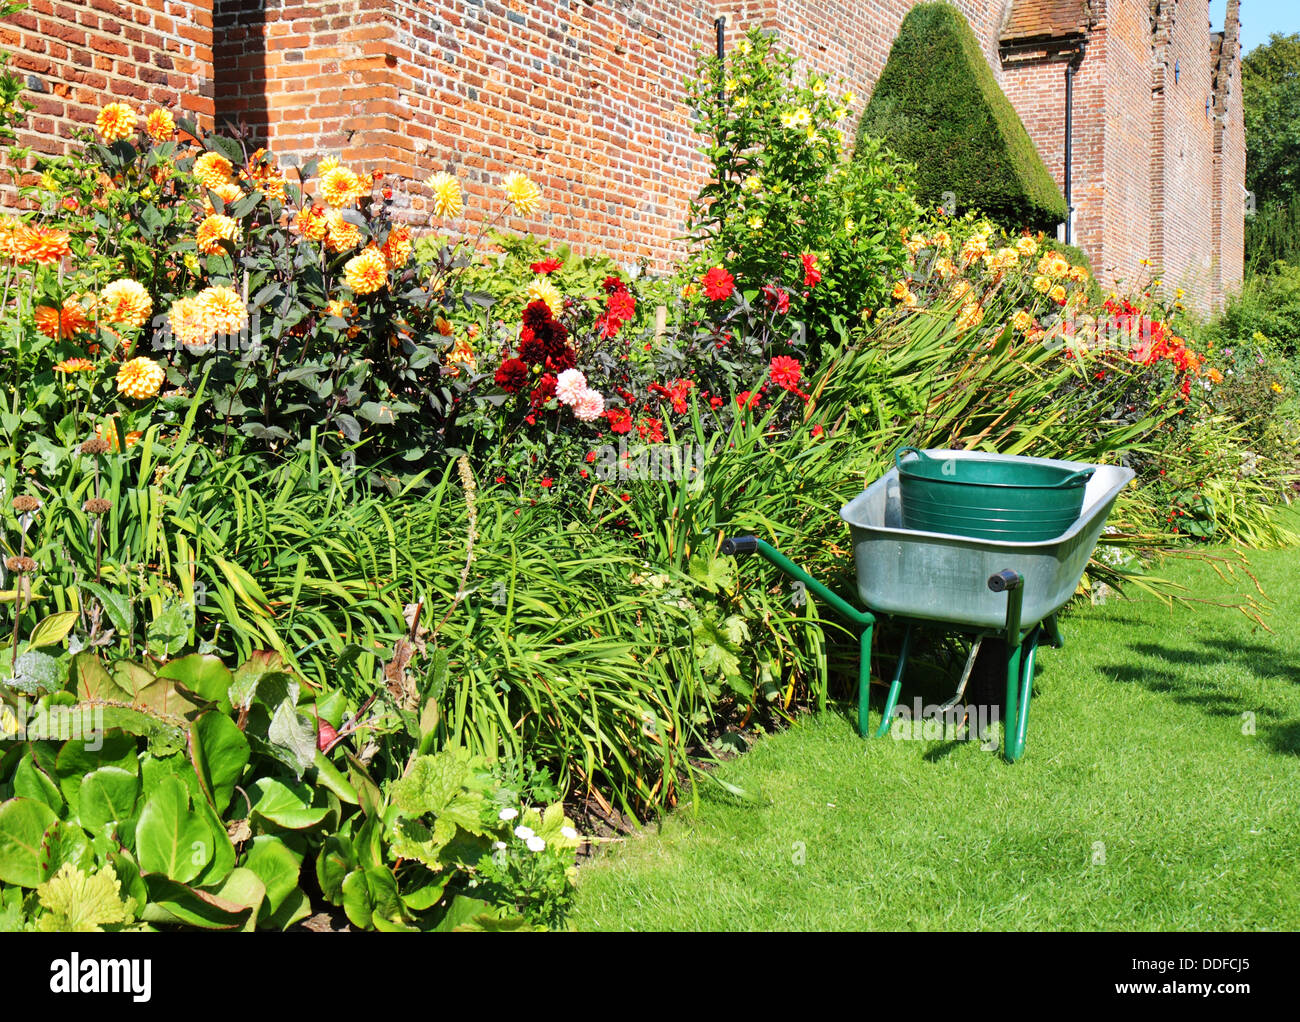 Wheelbarrow parked next to a colorful border of Summer Flowers in an English walled garden - Stock Image